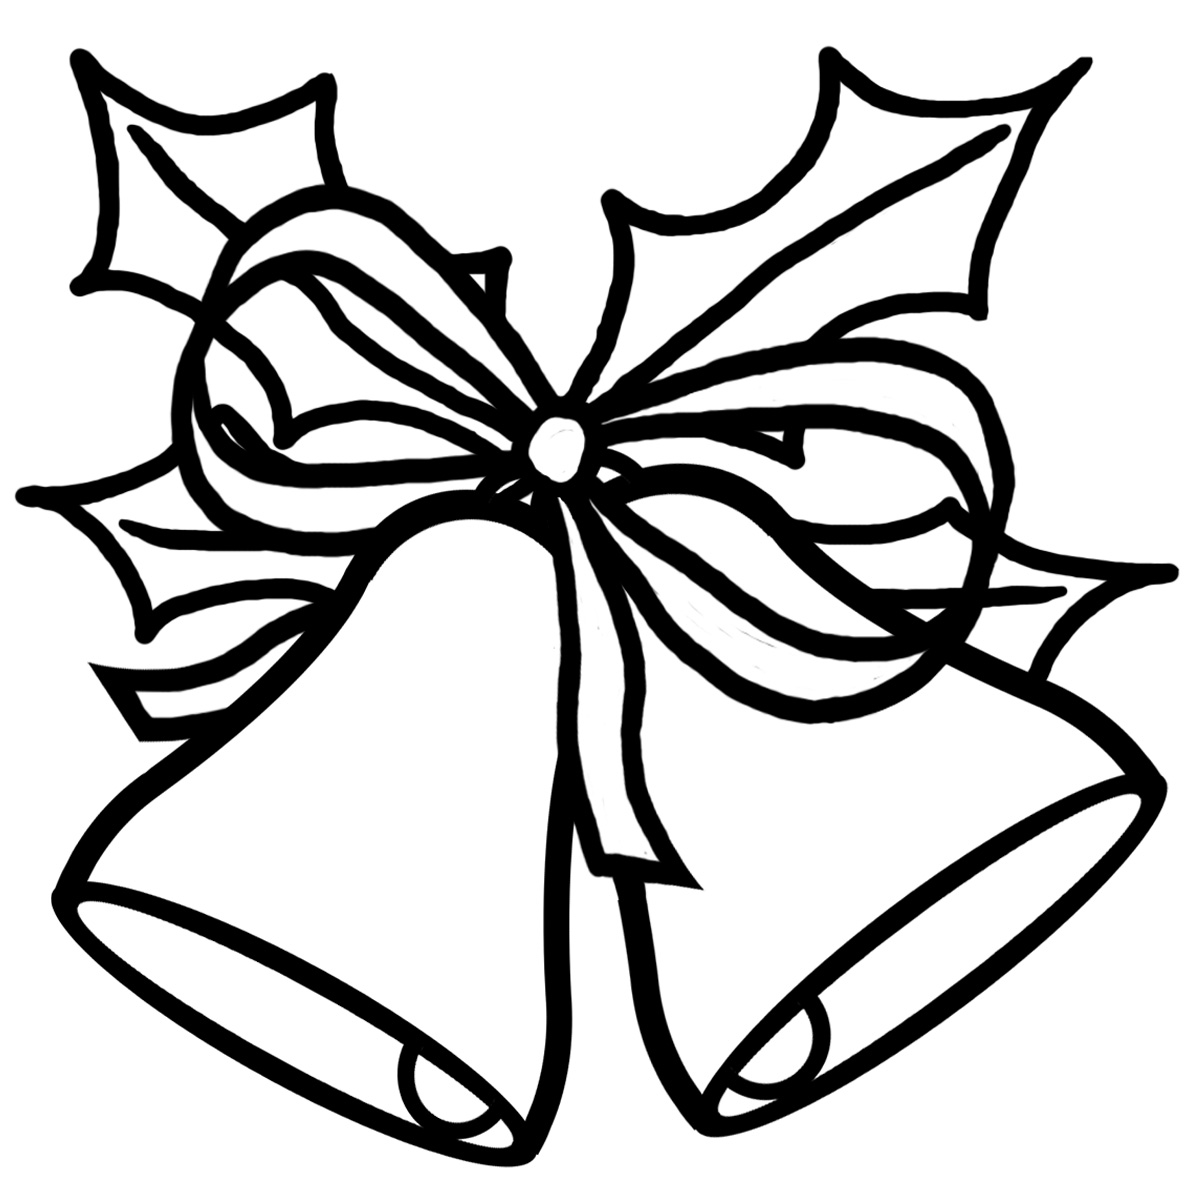 1200x1200 Christmas Bells Black And White Clipart